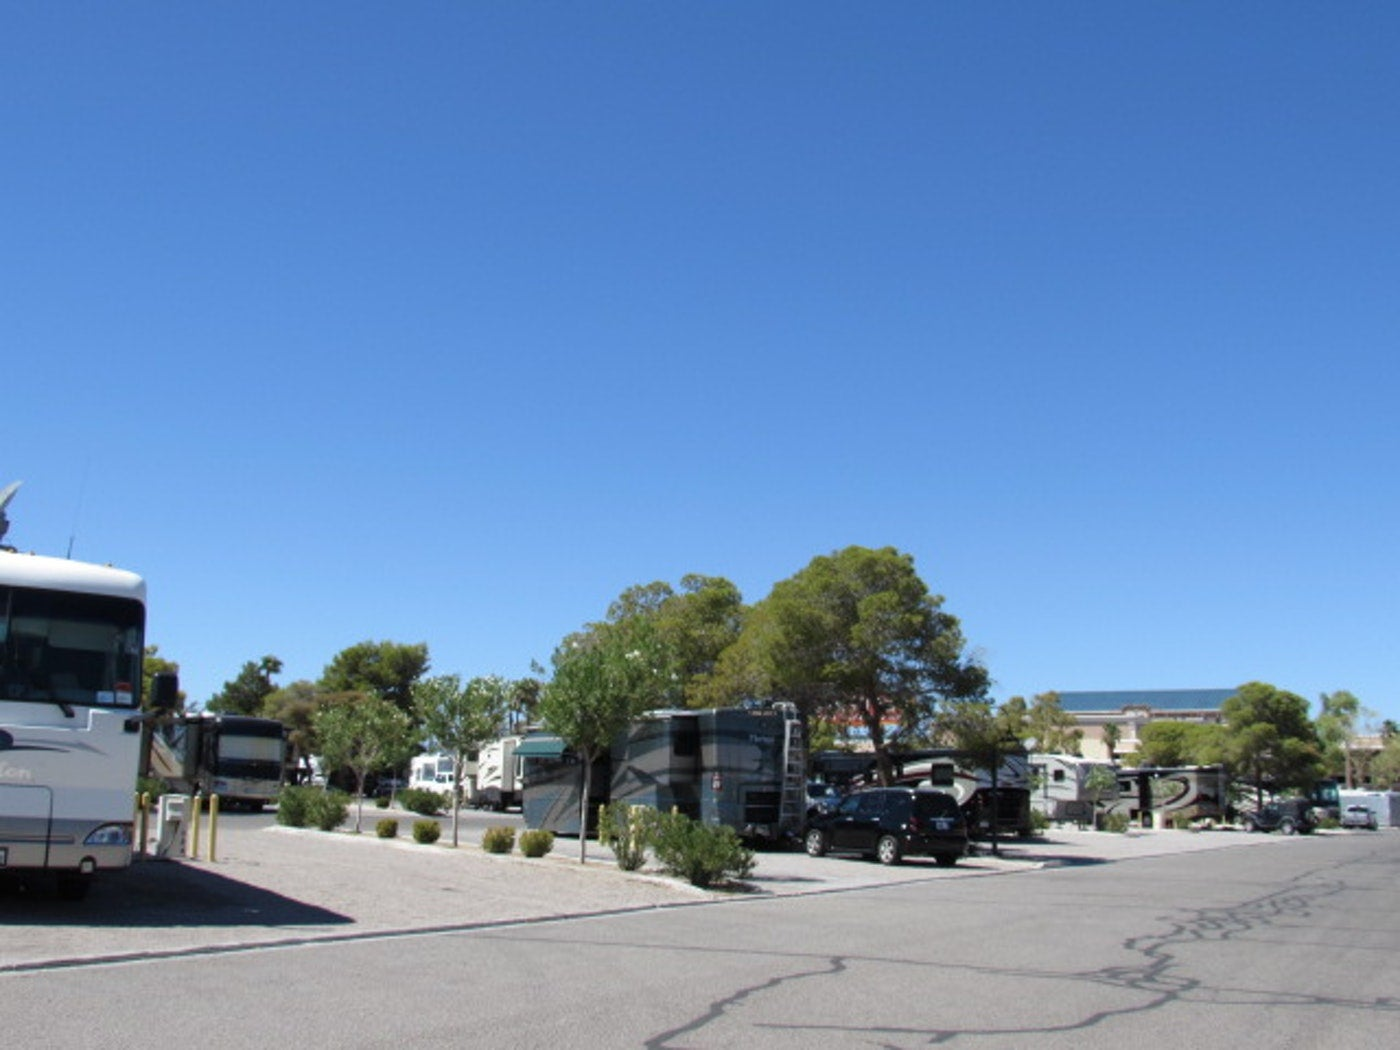 las vegas rv resorts, koa, sam's town